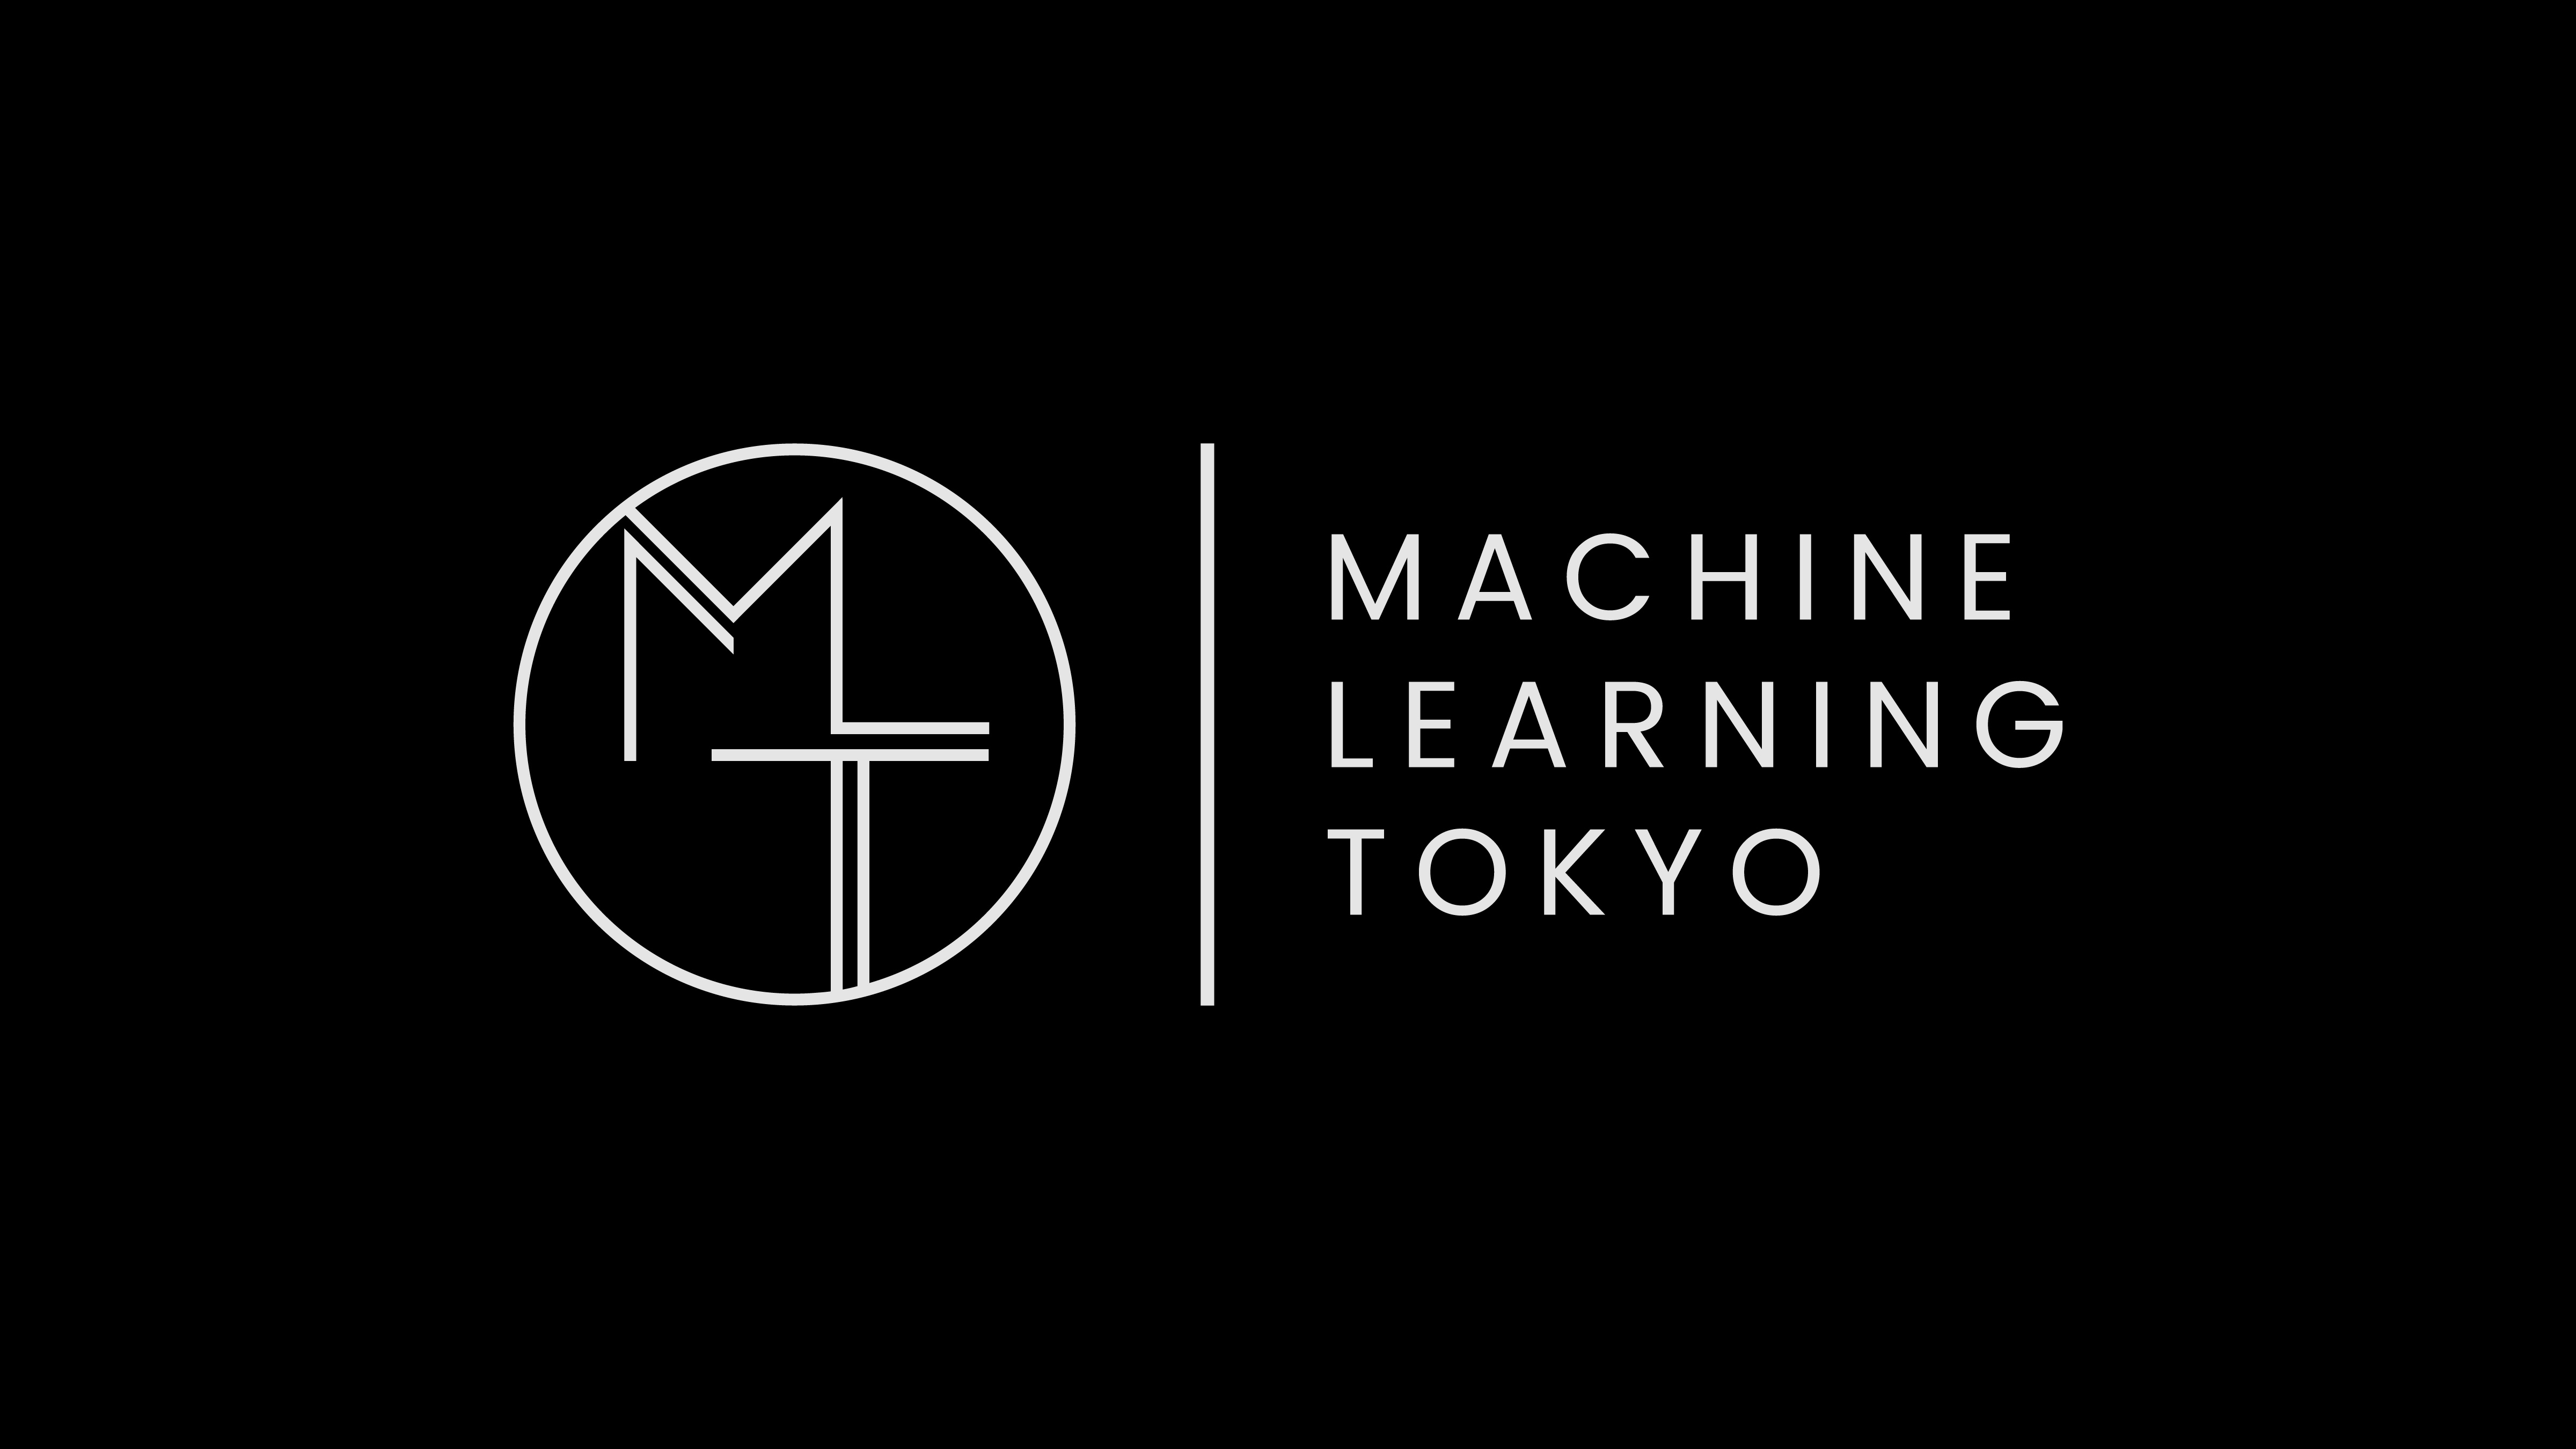 Machine Learning Tokyo